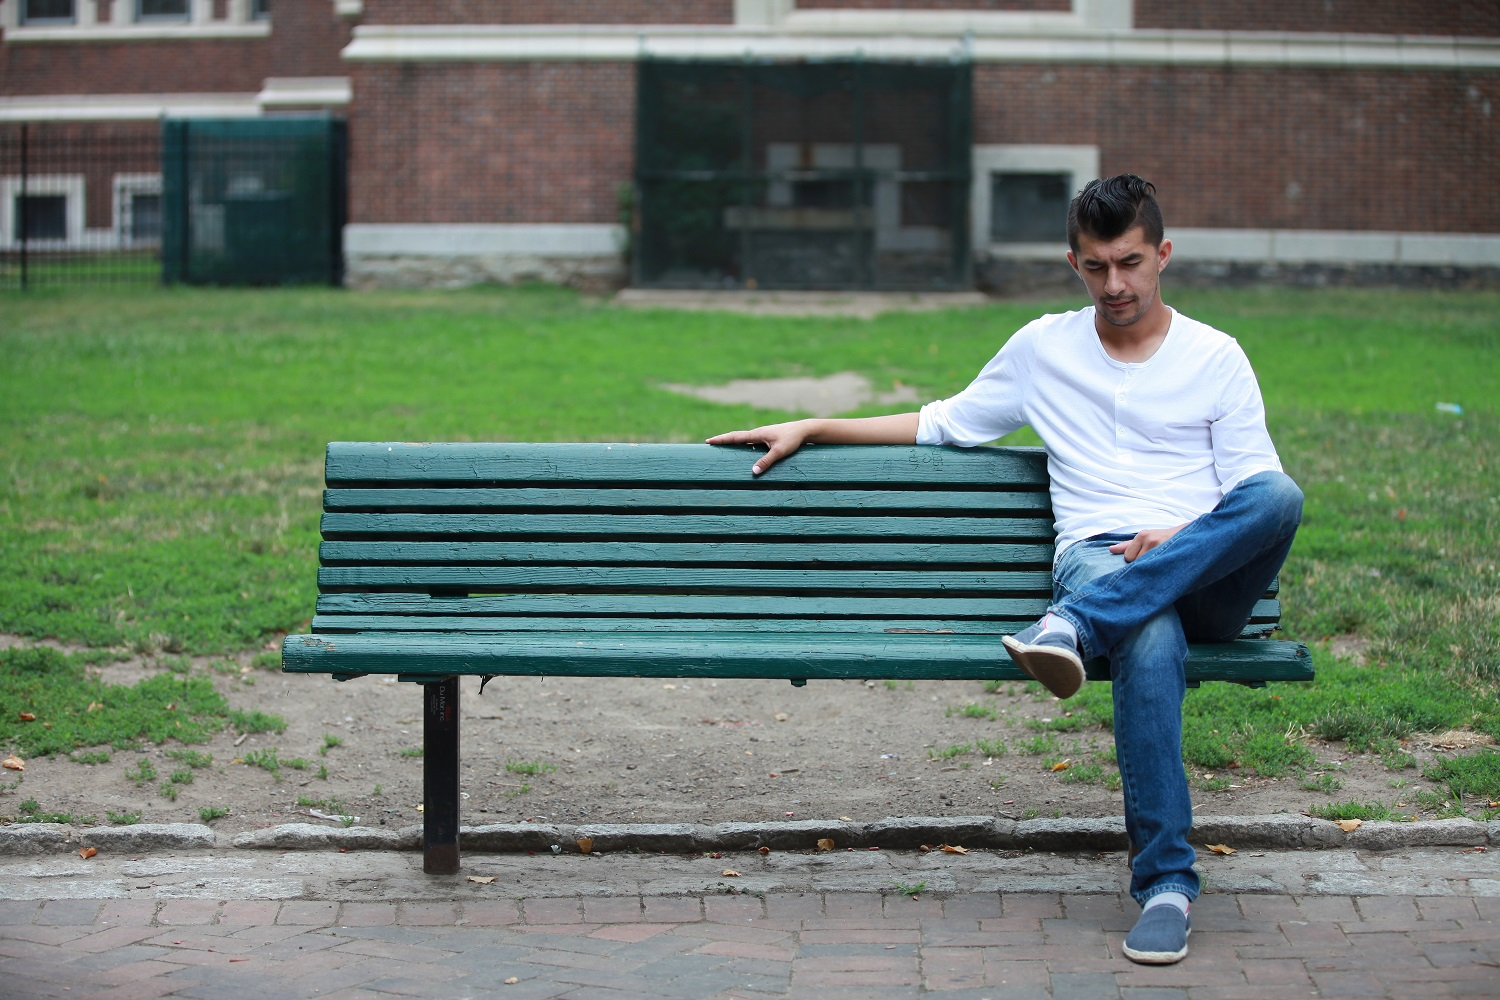 A man in a white long-sleeve t-shirt and jeans sits on a bench, looking down at his phone.